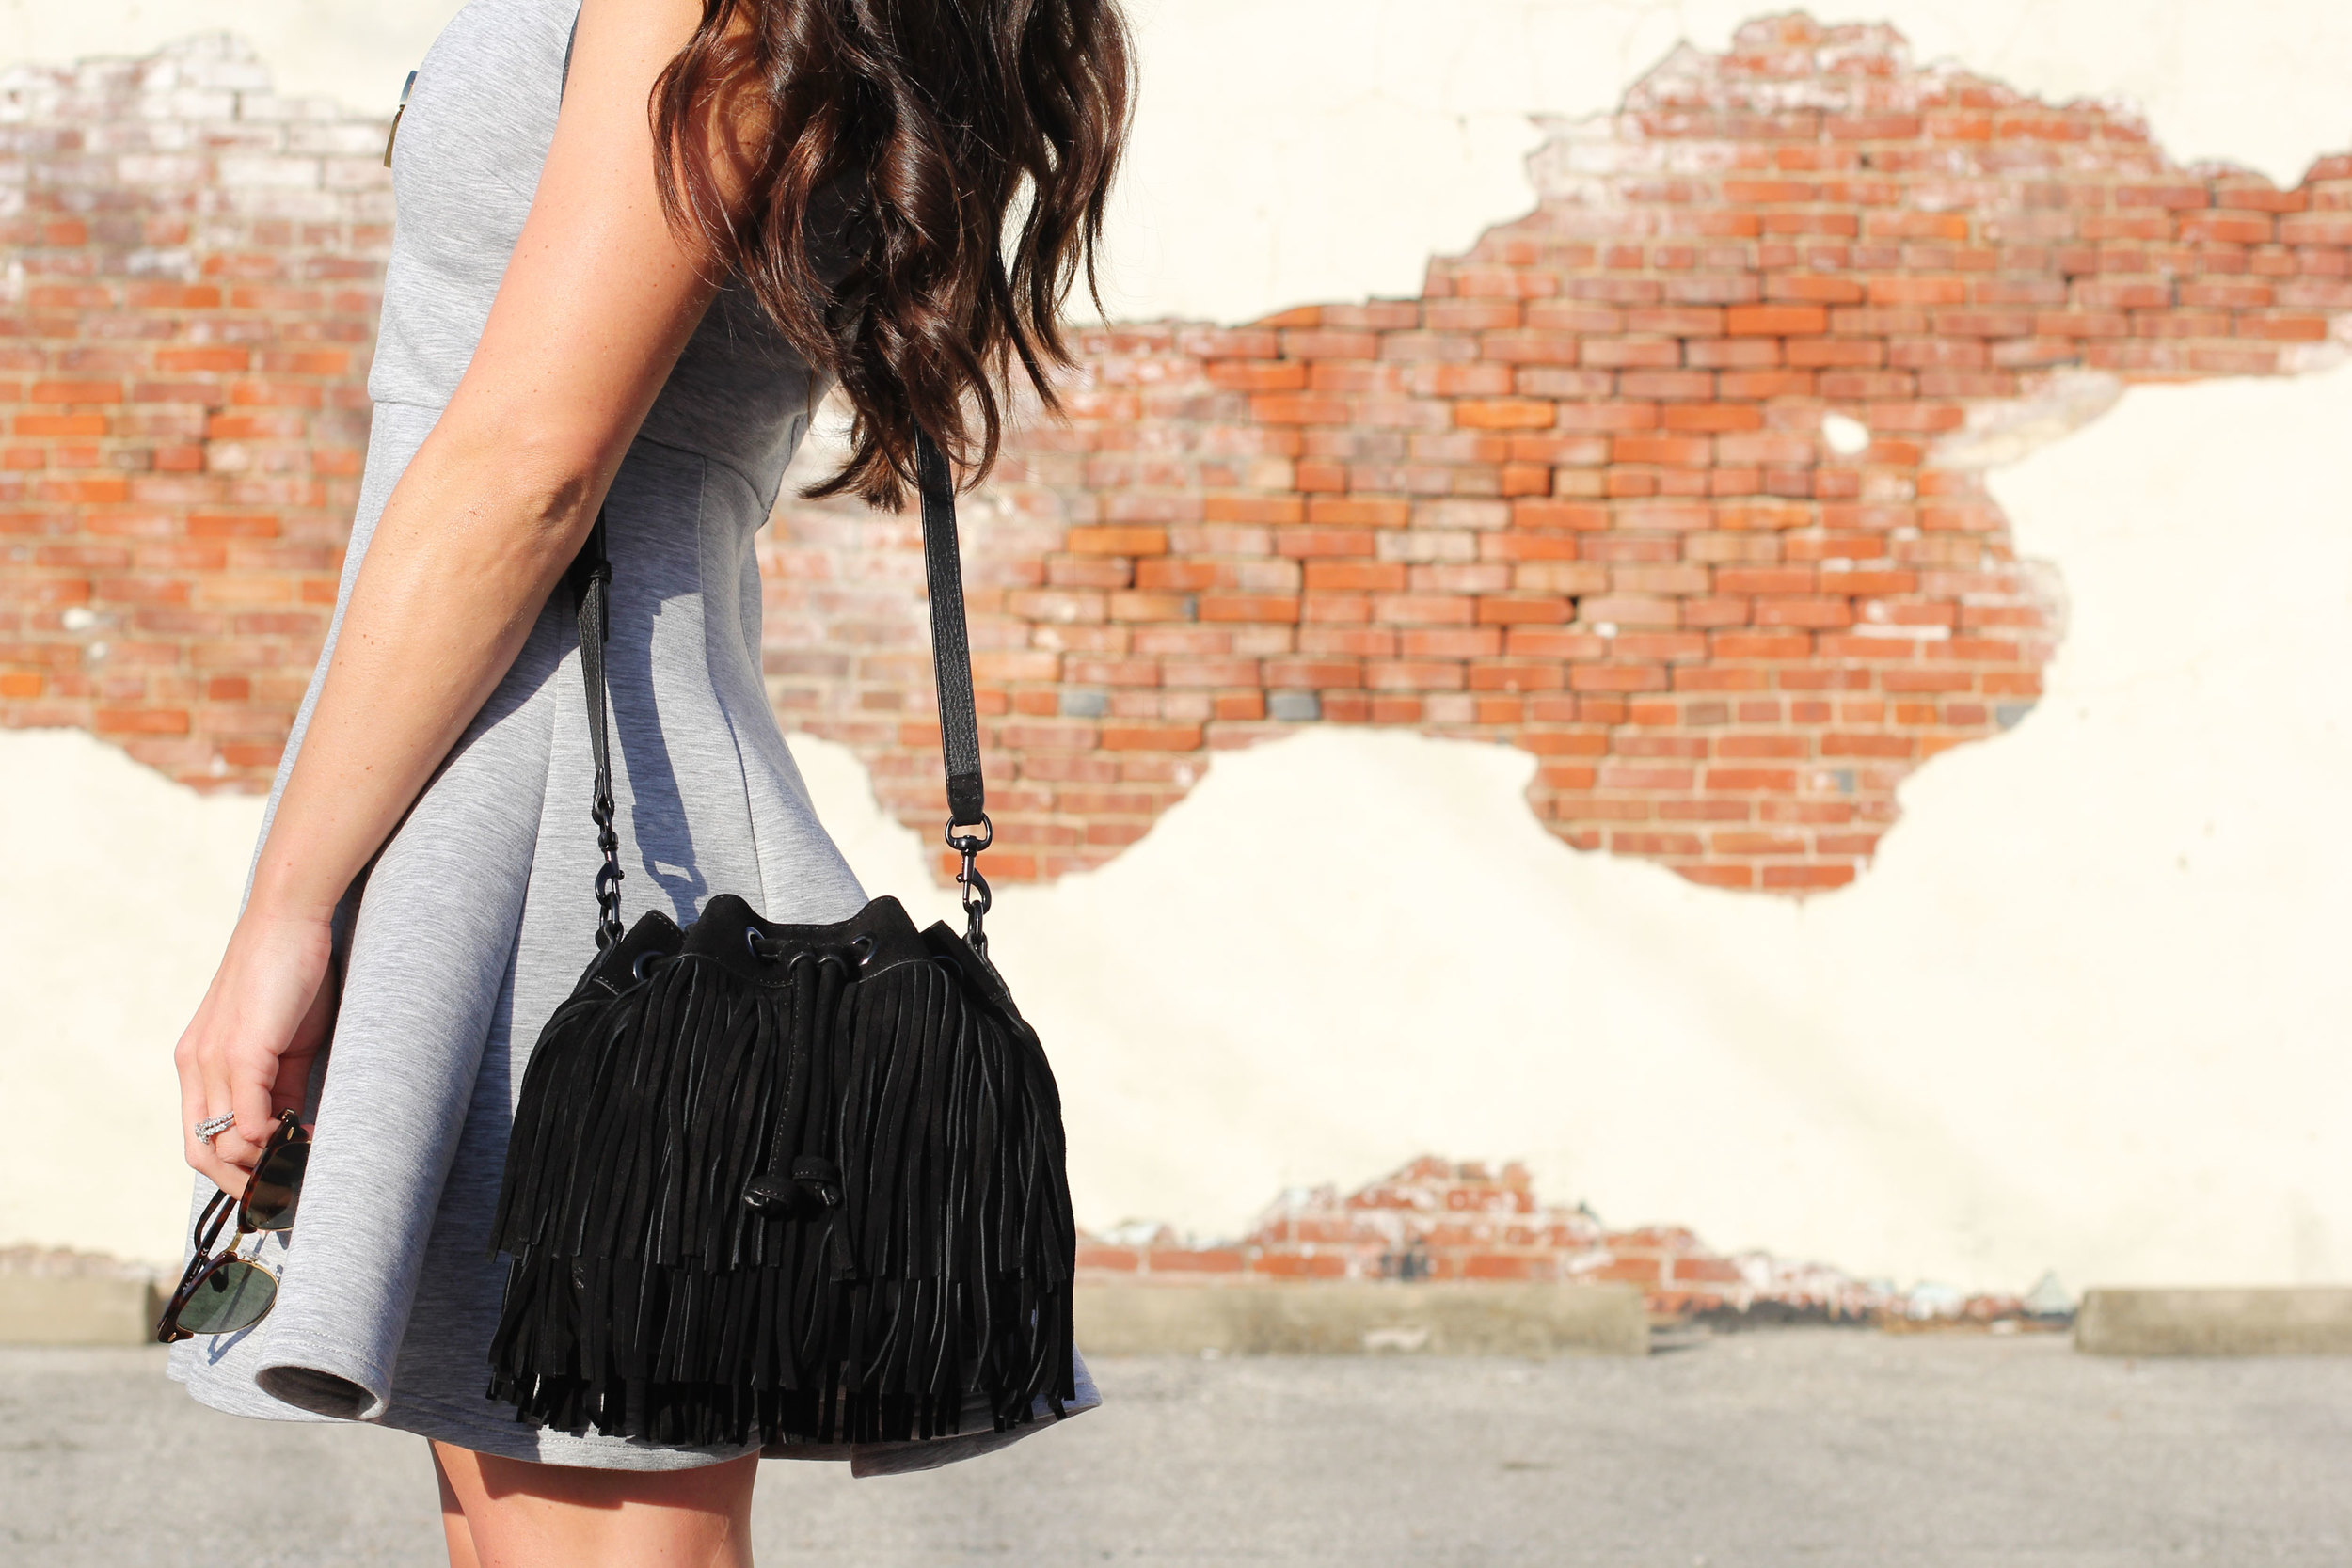 MINKPINK Stagnant Dress, Rebecca Minkoff Fringe Mini Fiona Bucket Bag, Seychelles Play Along Pumps, Ray-Ban Club Master Sunglasses, House of Harlow 1960 Sunburst Pendant Necklace